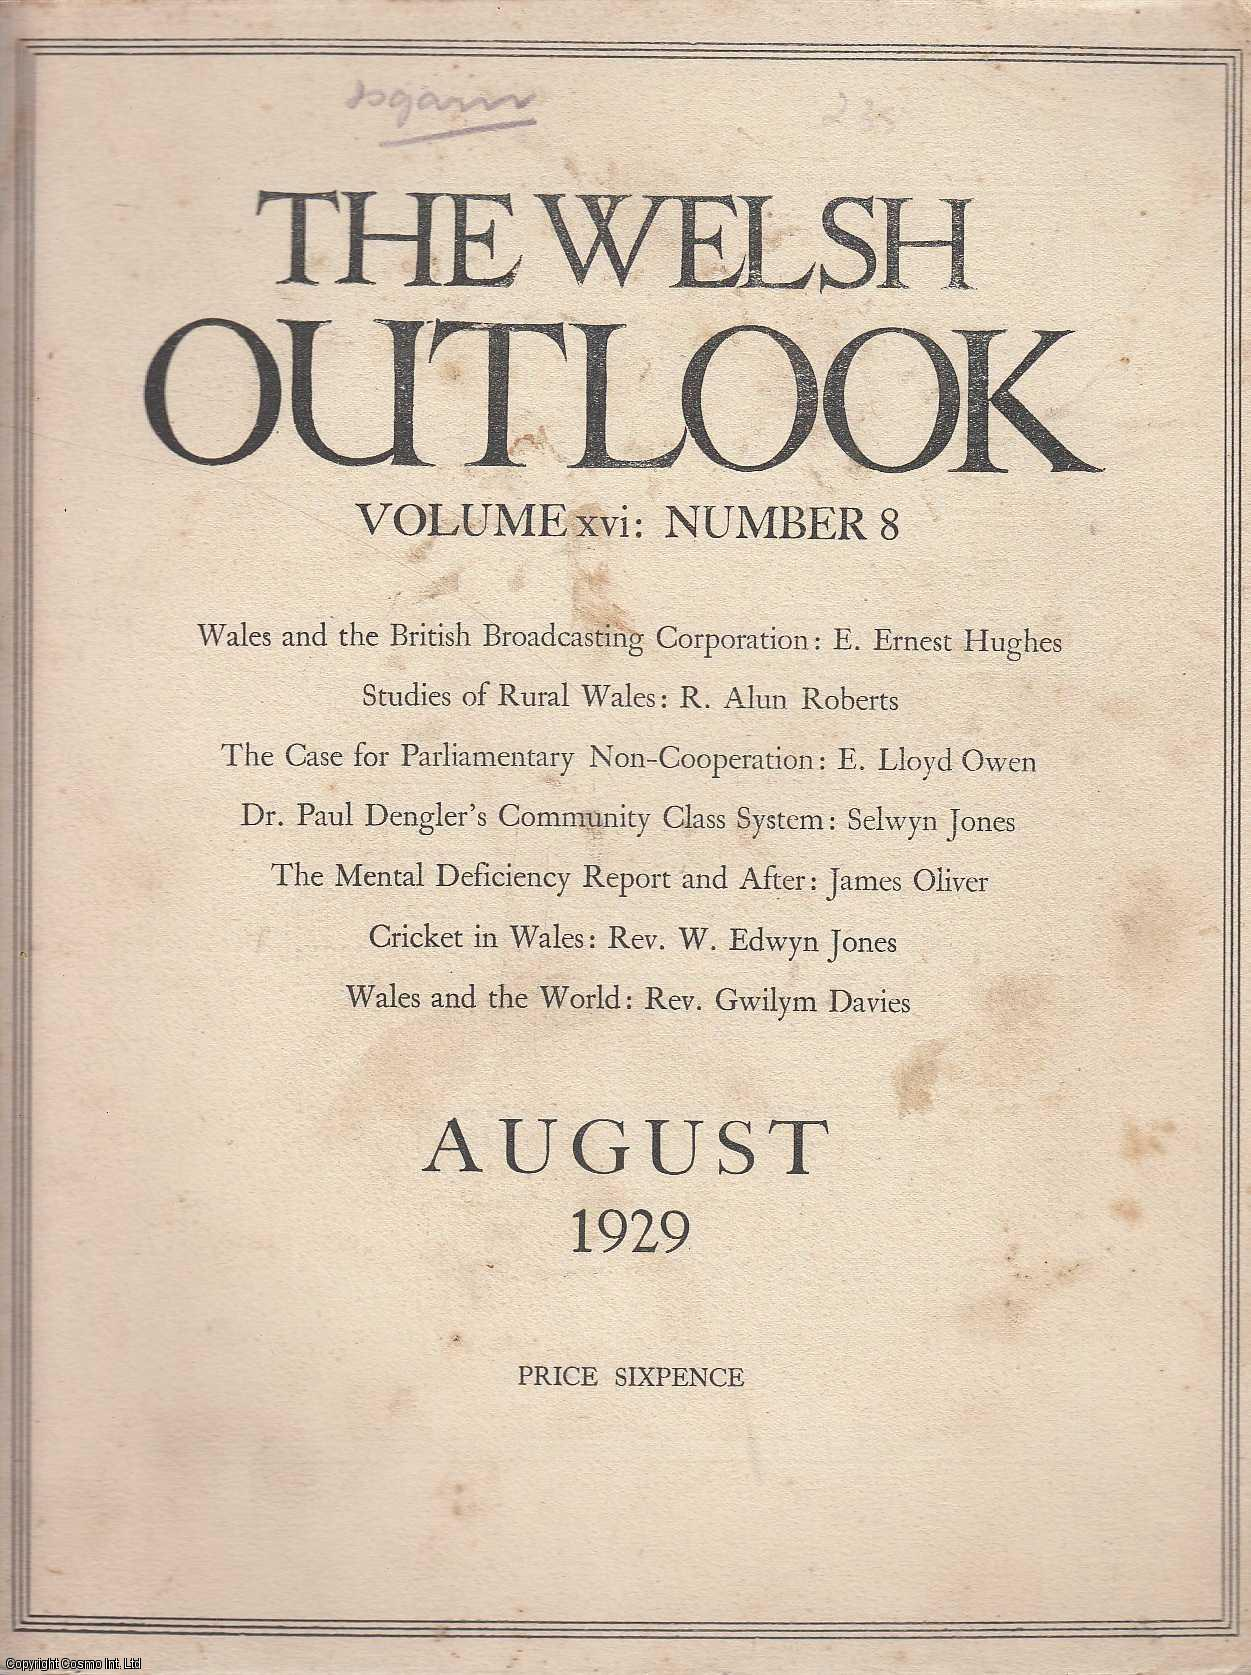 The Welsh Outlook. A Monthly Journal of National Social Progress. August, 1929. Contains; Wales and The British Broadcasting Corporation by Prof. E. Ernest Hughes; Studies of Rural Wales by R, Alun Roberts; The Case for Parliamentary Non-Cooperation by E. Lloyd Owen; Dr. Paul Dengler's Community Class System; The Mental Deficiency Report and After by James Oliver; Cricket in Wales by Rev. W. Edwyn Jones; The Welsh League of Nations Union; Wales and The World by Rev. Gwilym Davies; The Deserted Village - New Style by Frederic Evans; The Story of The Friars by Herbert M. Vaughan; How The Daisy got its Name by Katrin Bodfan., Thomas Jones (Editor)